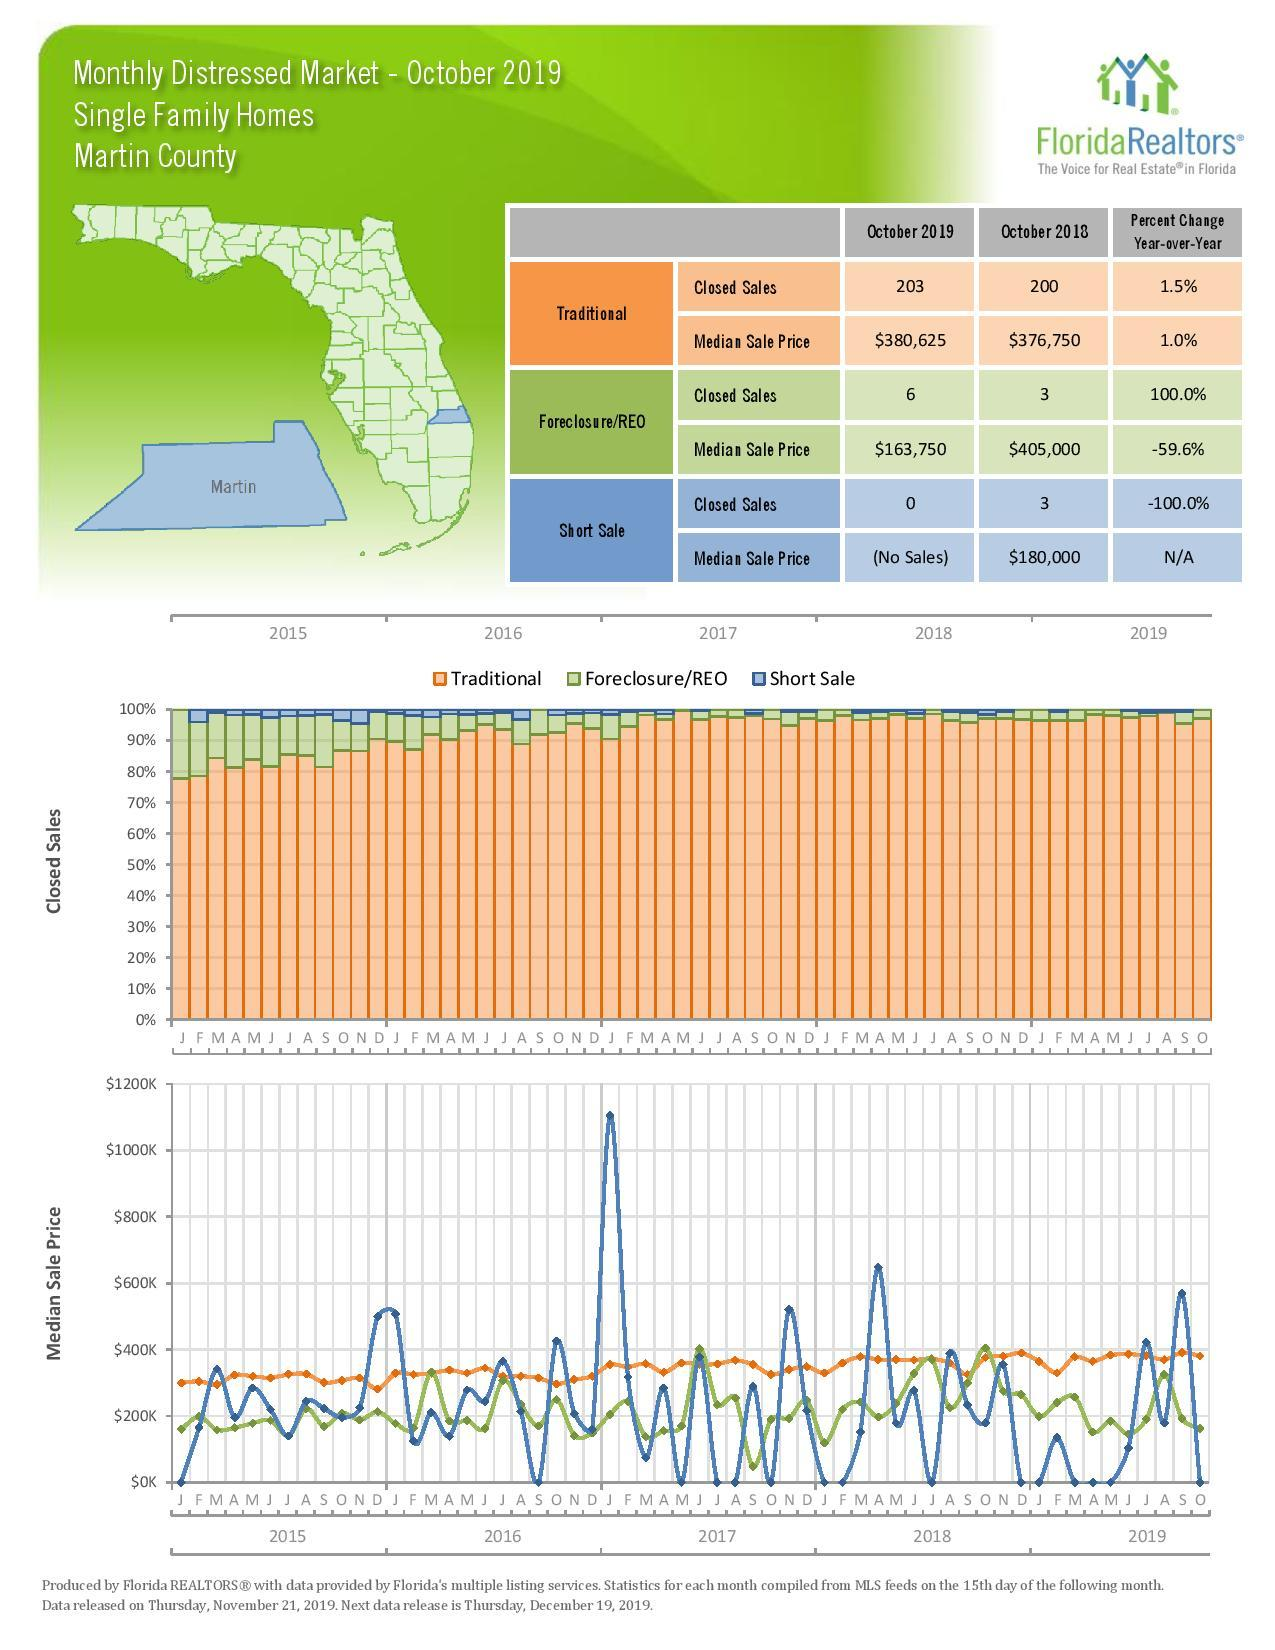 October 2019 Local Market Update, Martin, FL (Florida Realtors)